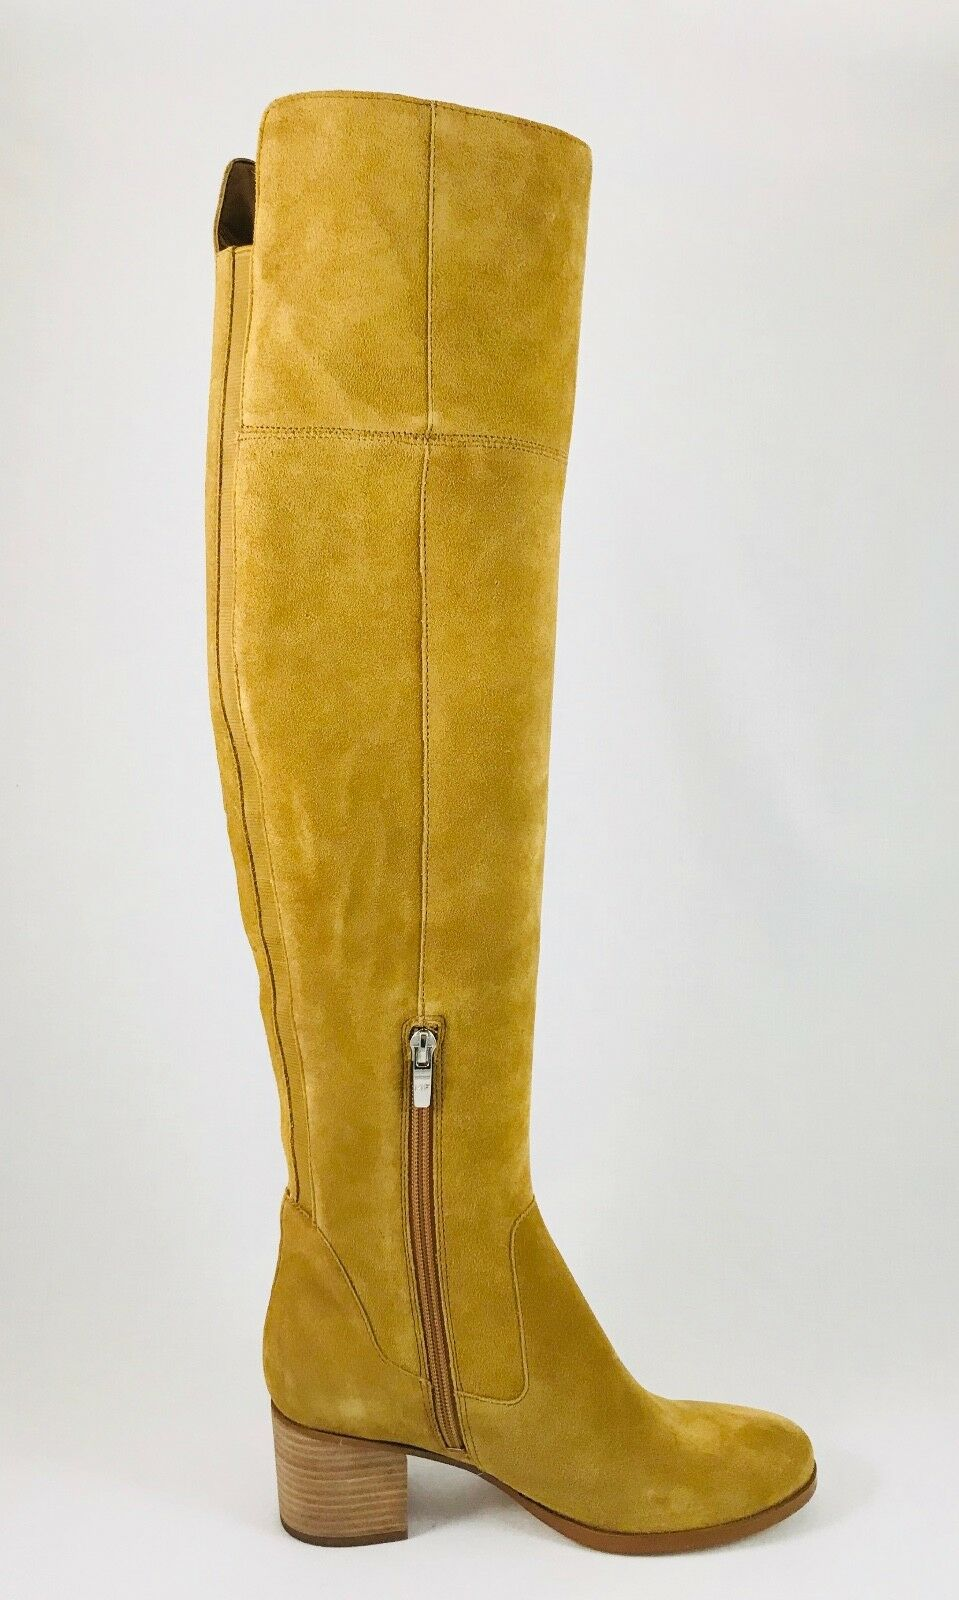 Marc Fisher Escape Over The The The Knee Wide Calf Stiefel Medium Braun 7.5 US ... 6f6bd1